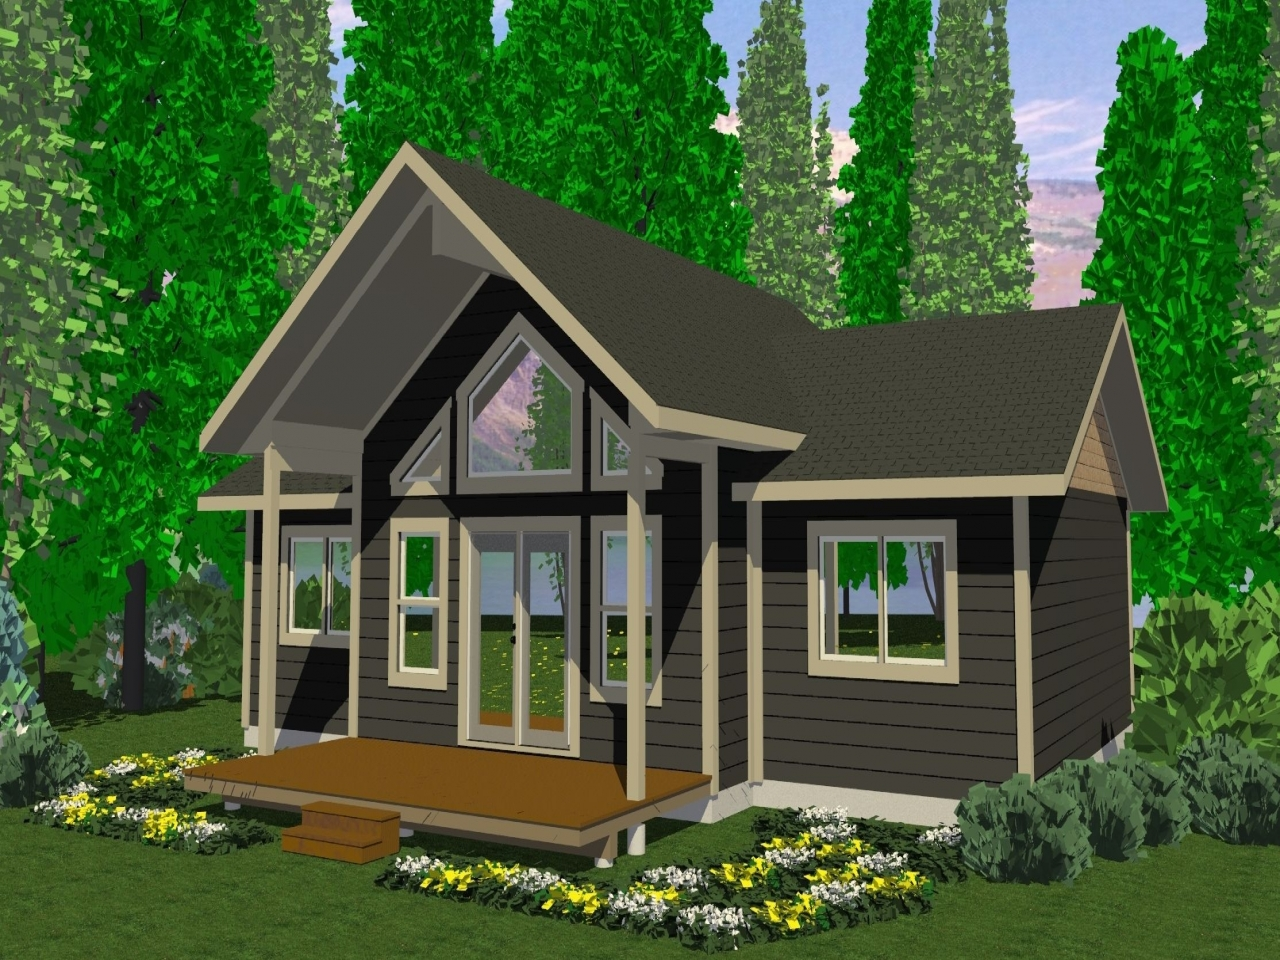 Small Cabins Under 1000 Sq FT Small Cabins and Cottages ...